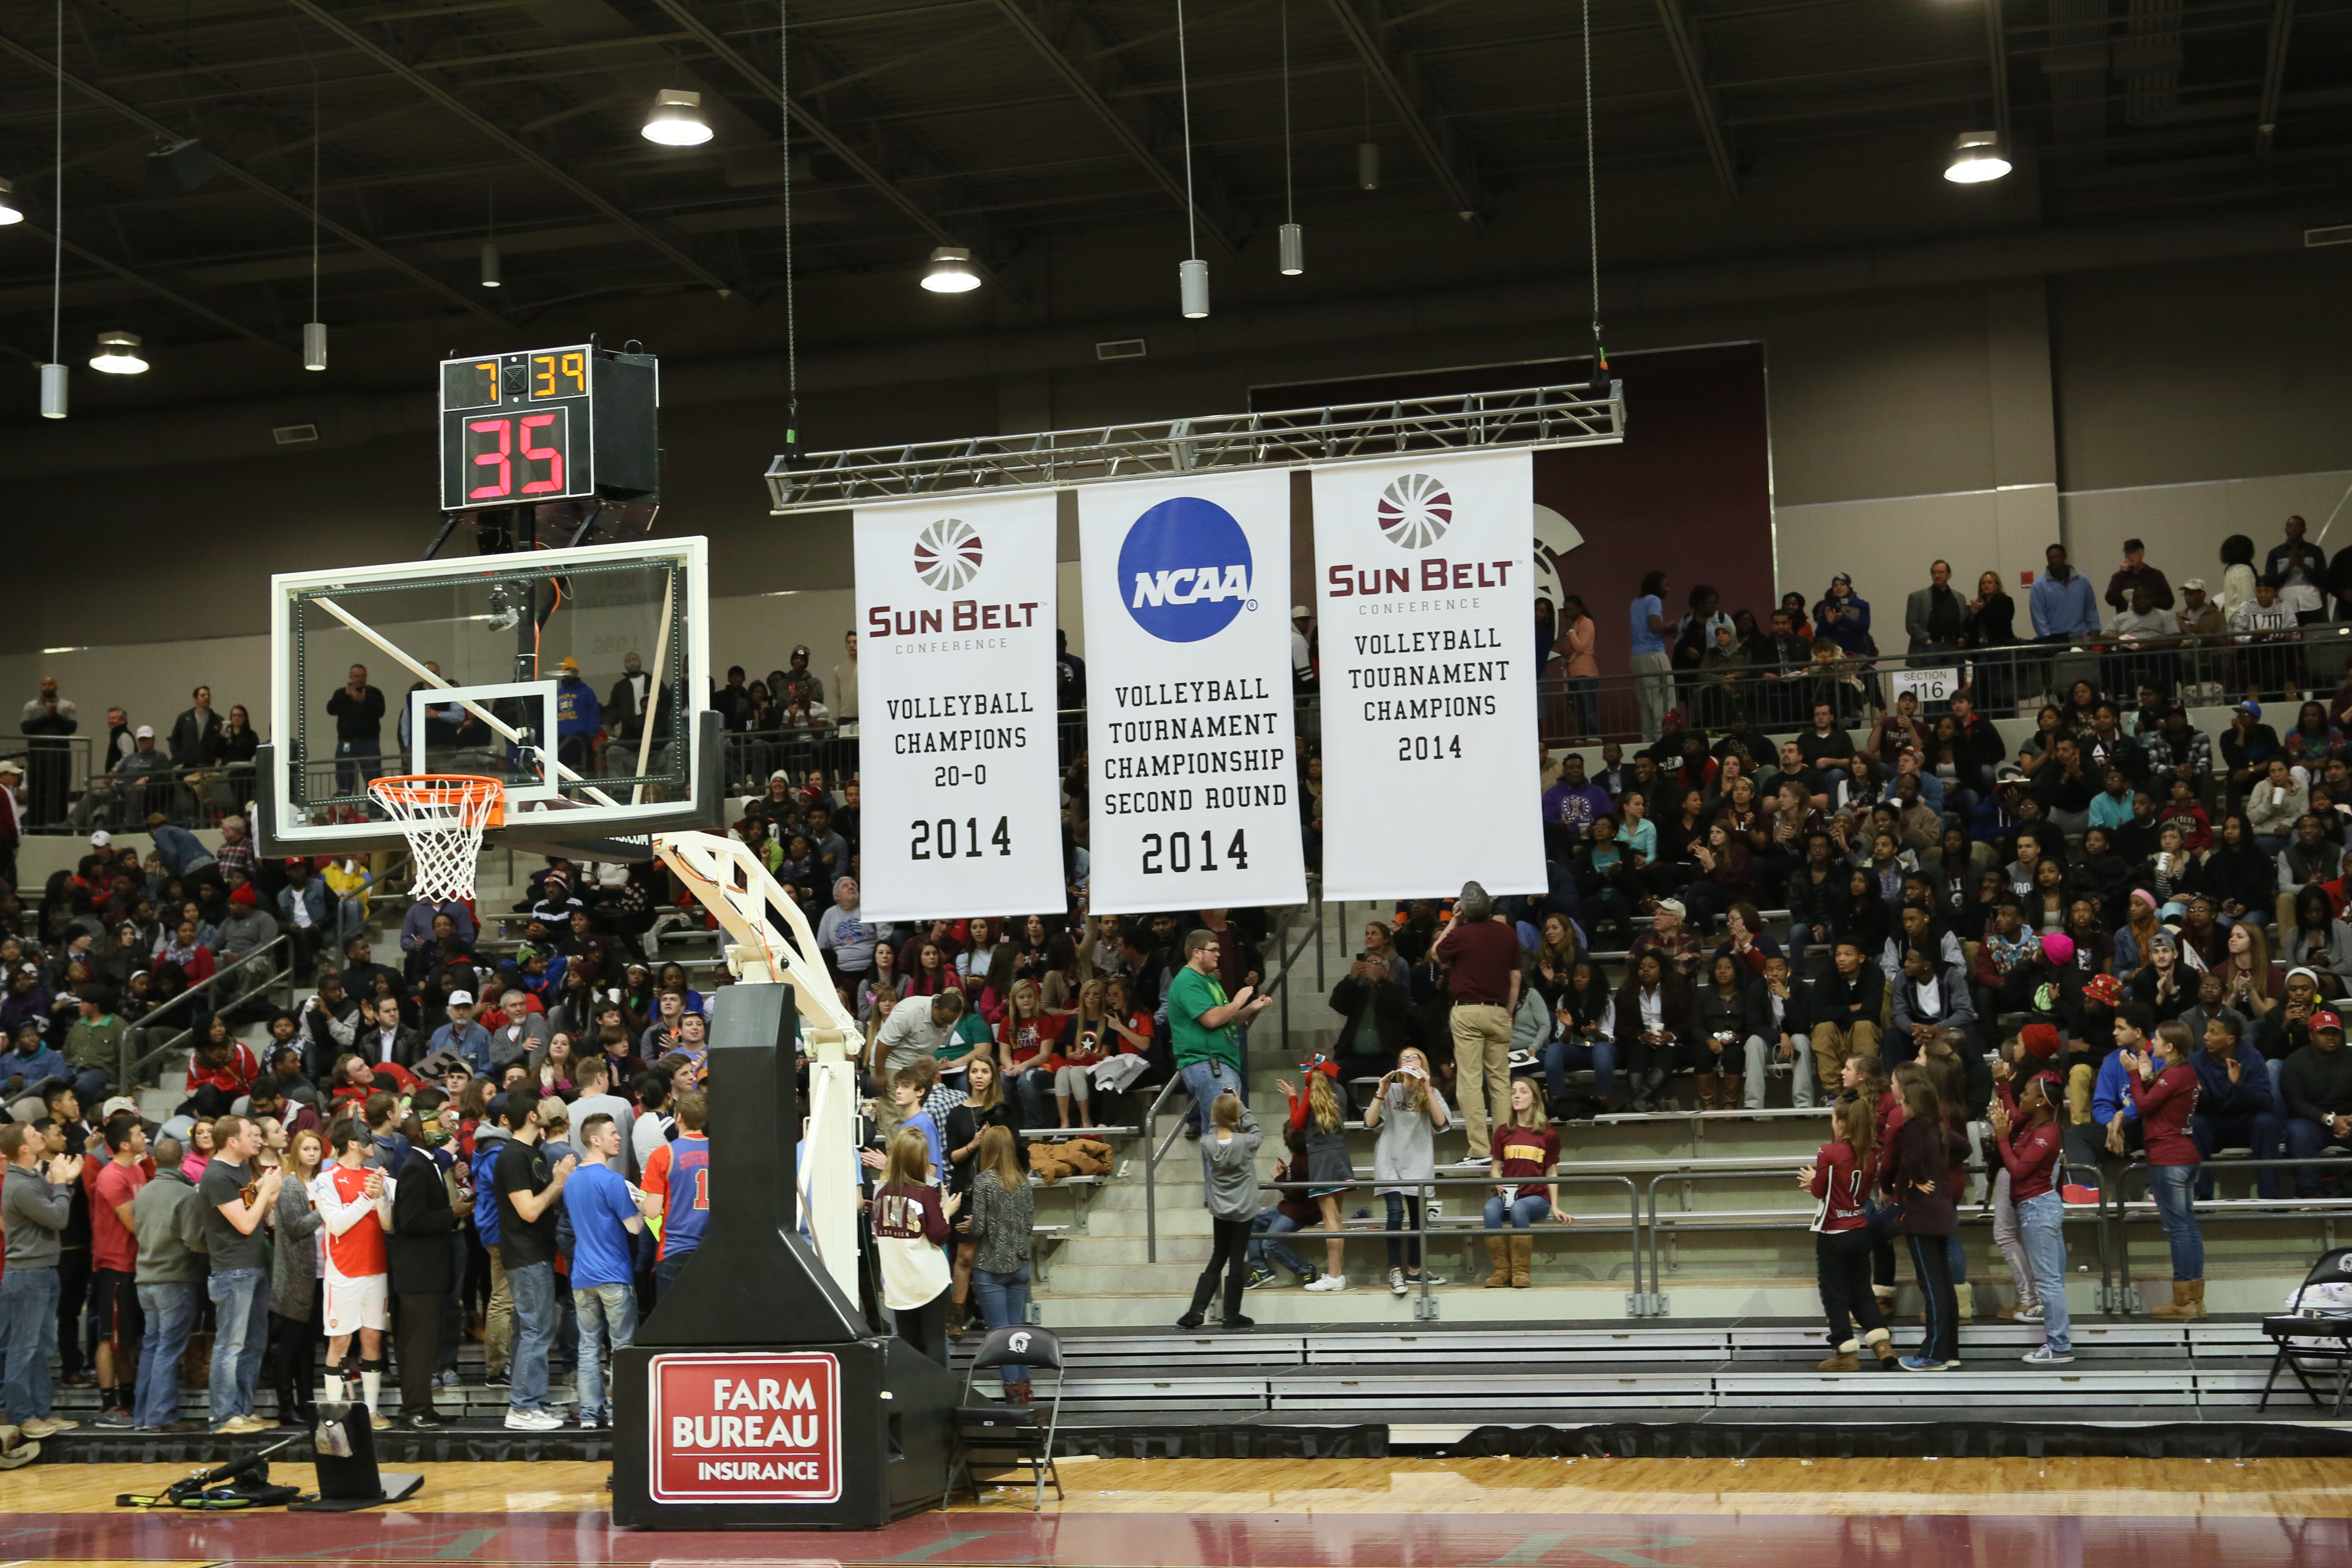 Sun Belt and NCAA Banners for UALR Volleyball Team